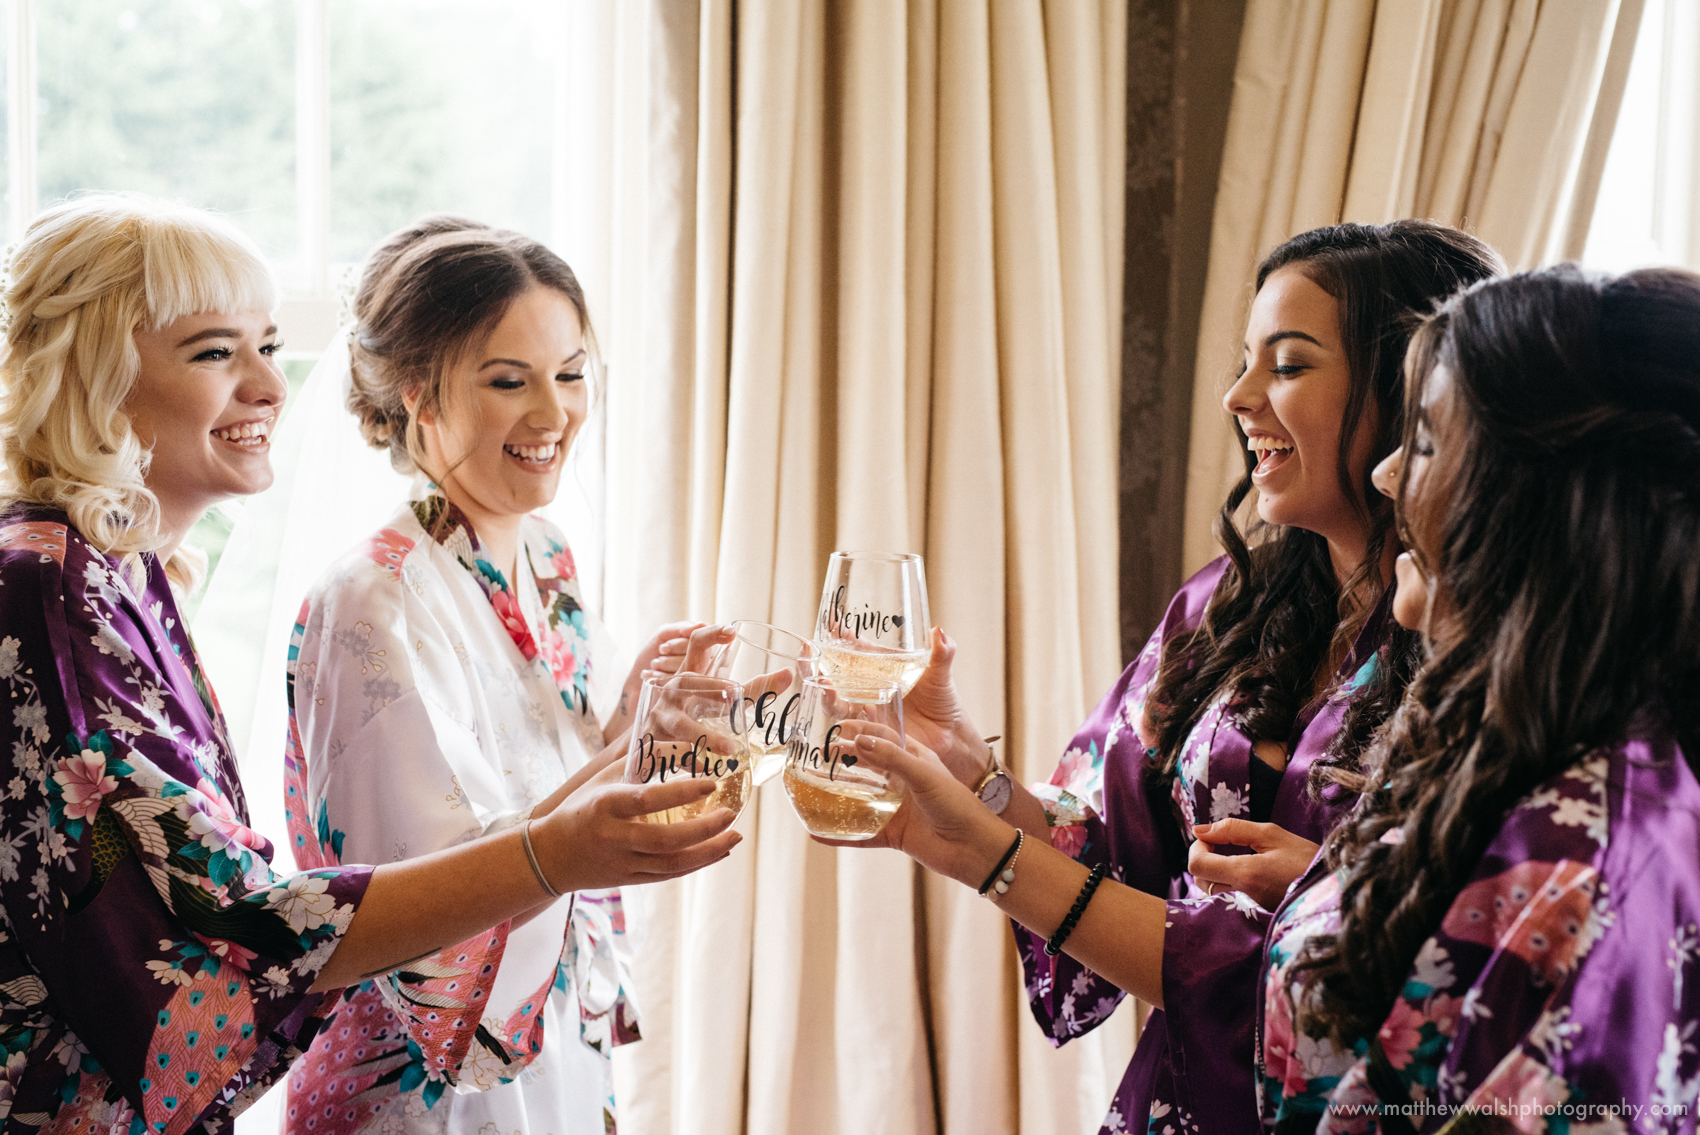 The bridesmaids share a fun cute moment as they toast the bride